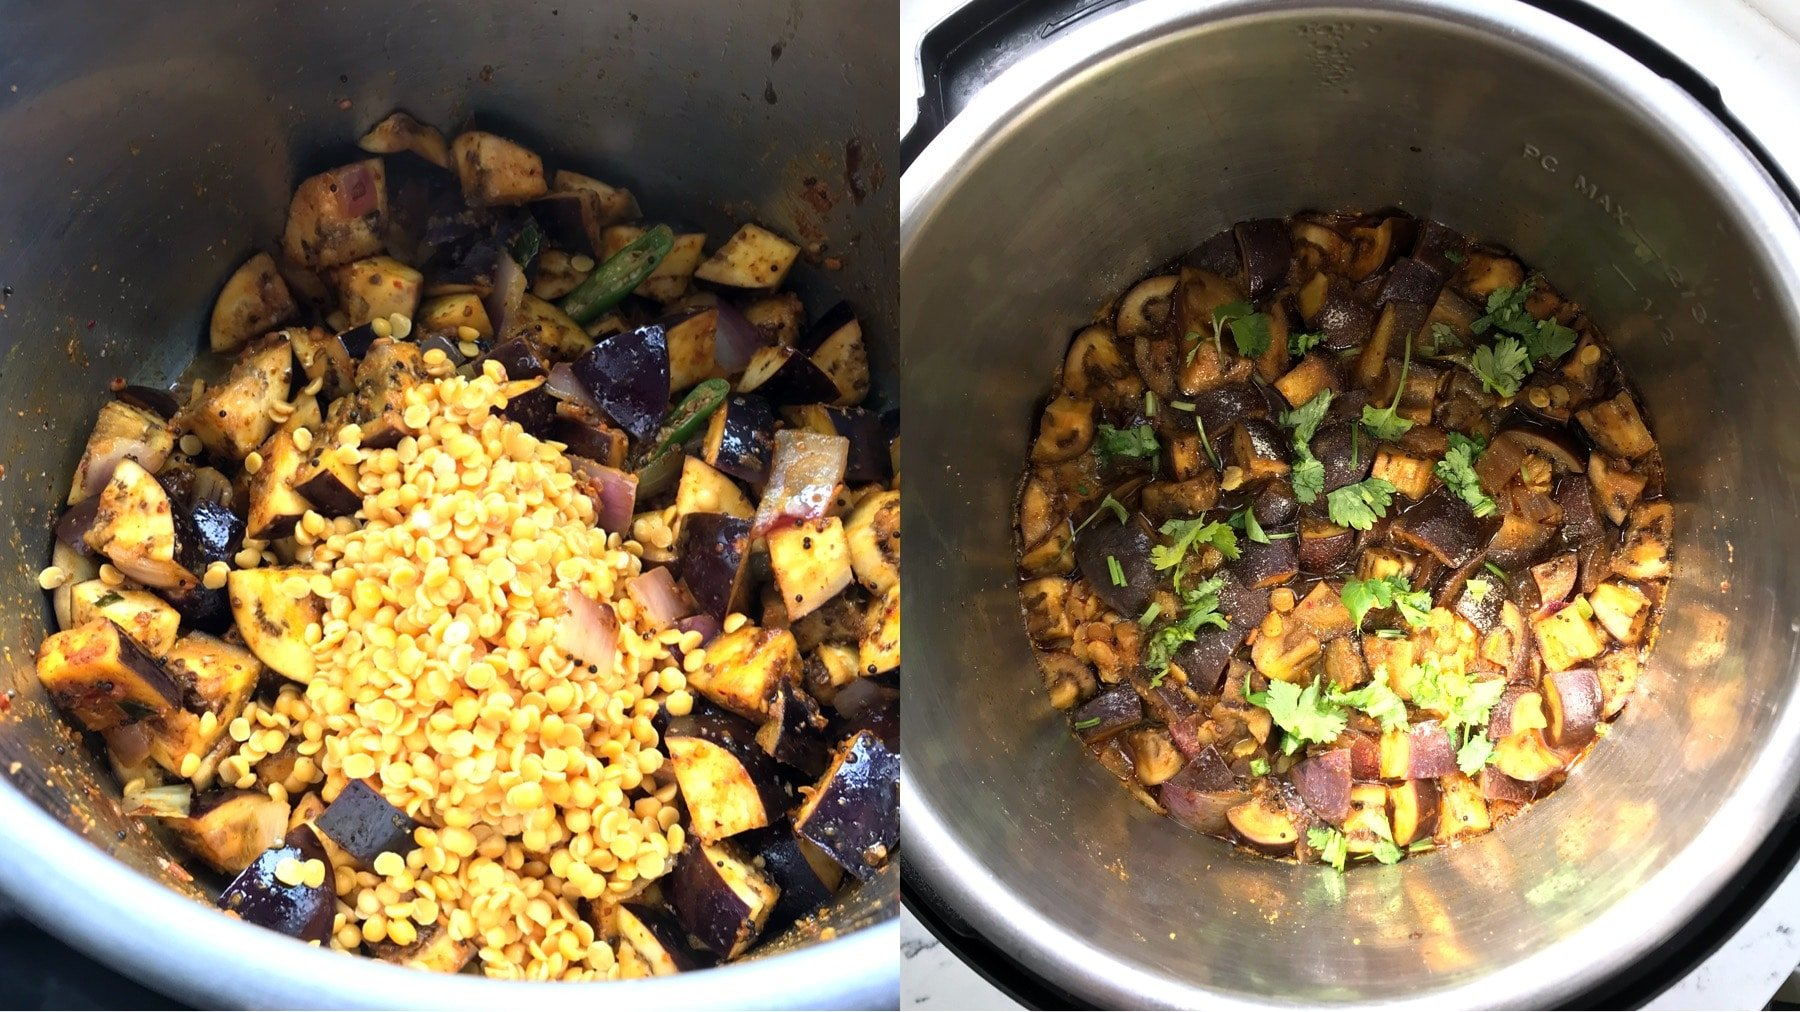 A pot is filled with Brinjal sambar and lentils